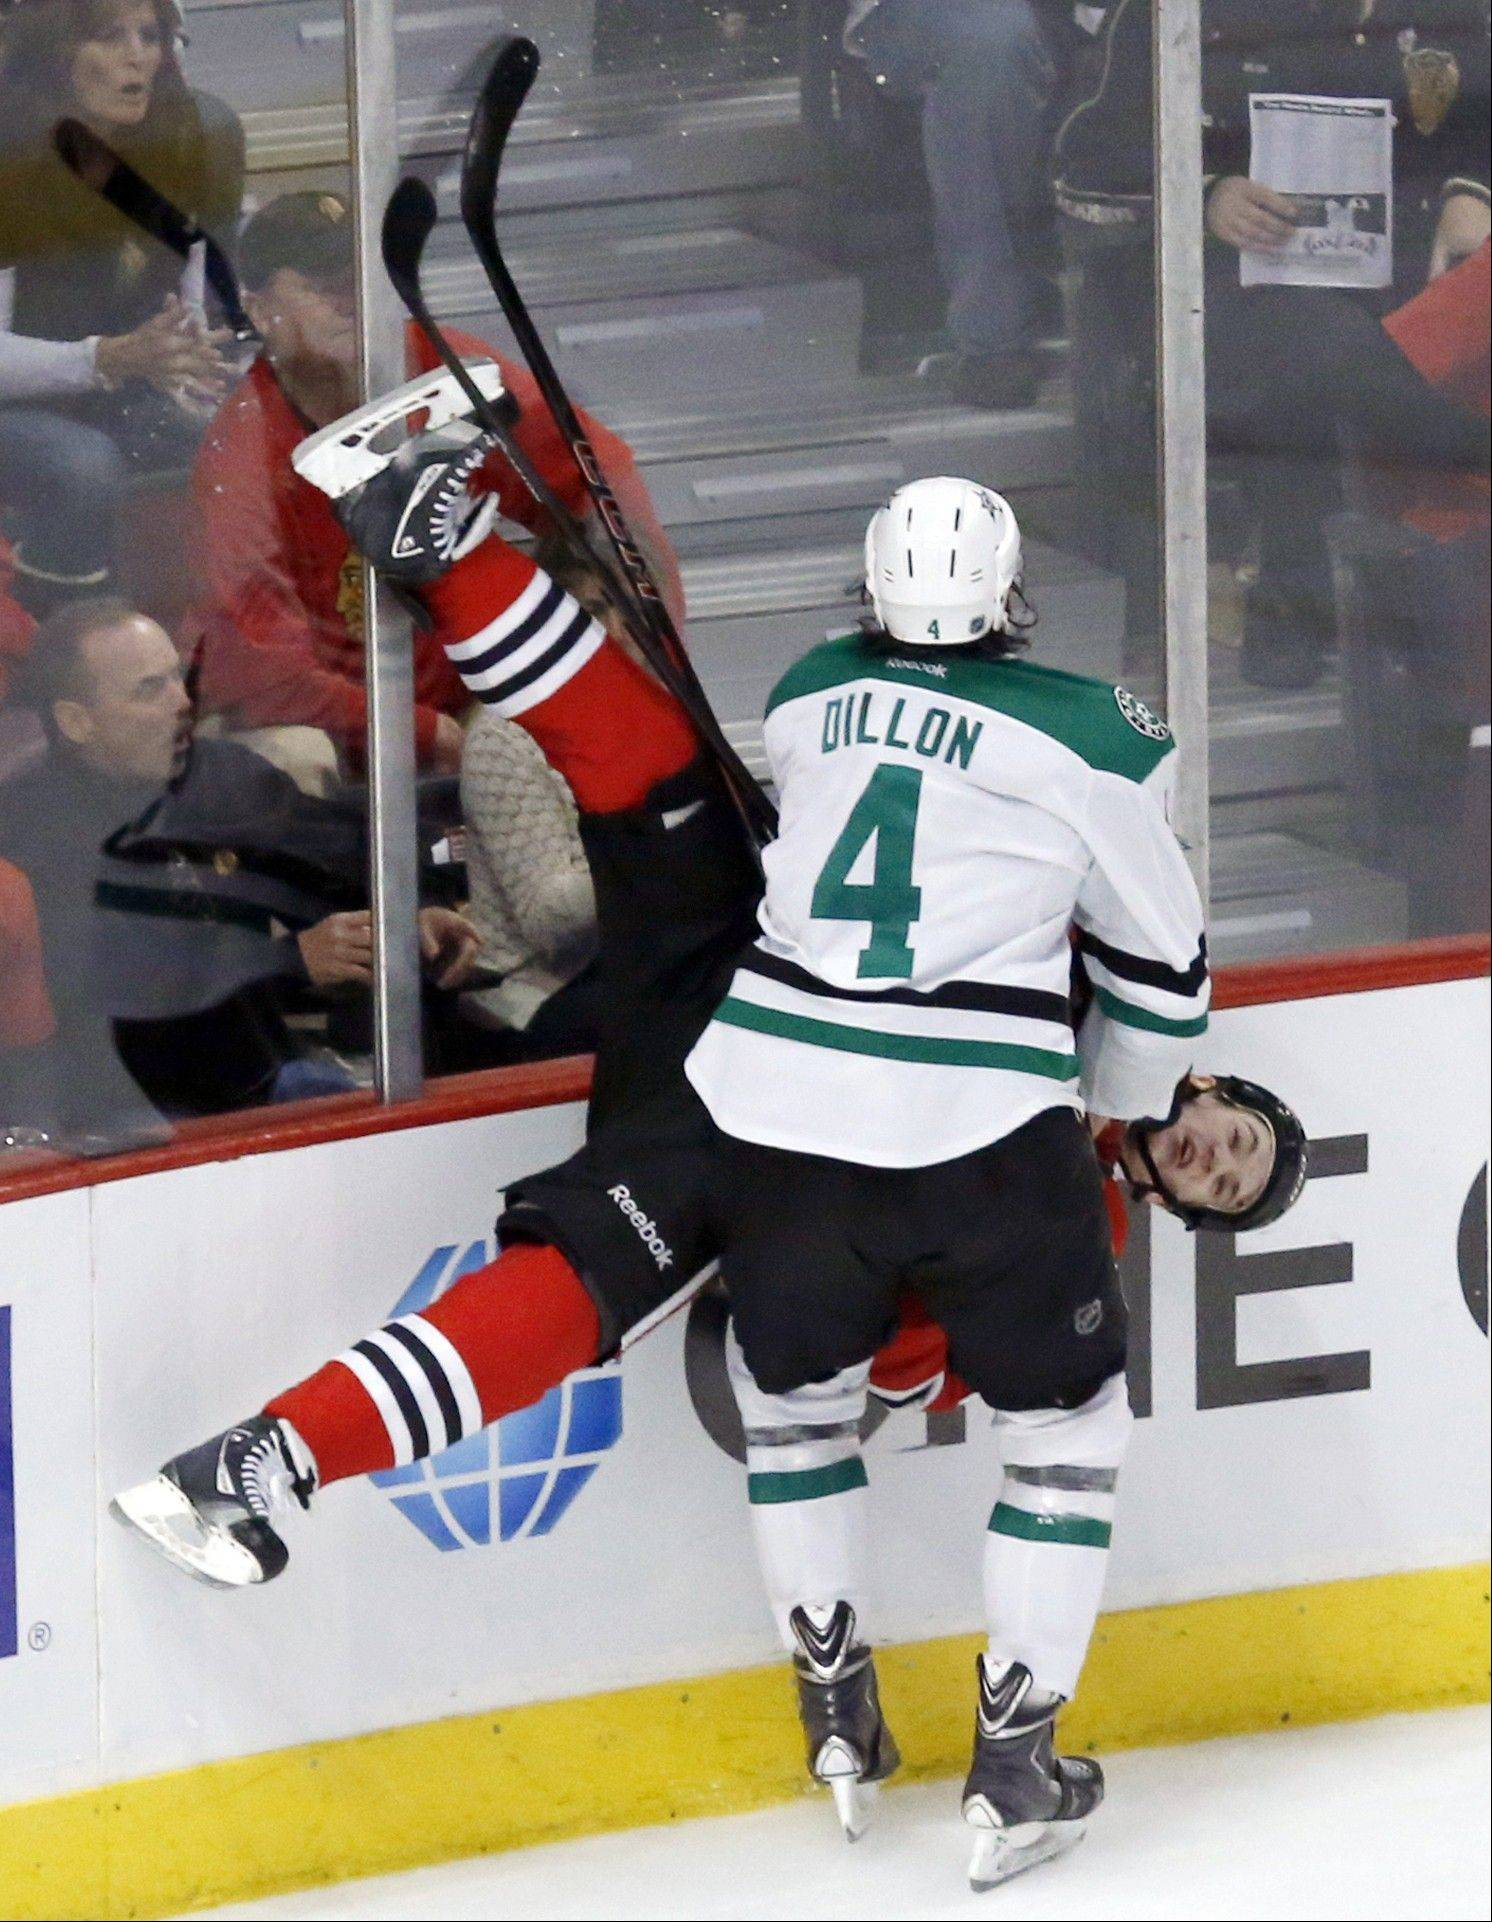 This check by Stars defenseman Brenden Dillon against Andrew Shaw in the third period of Tuesday's 4-3 loss will keep the Blackhawks center out of action today in Minnesota against the Wild.